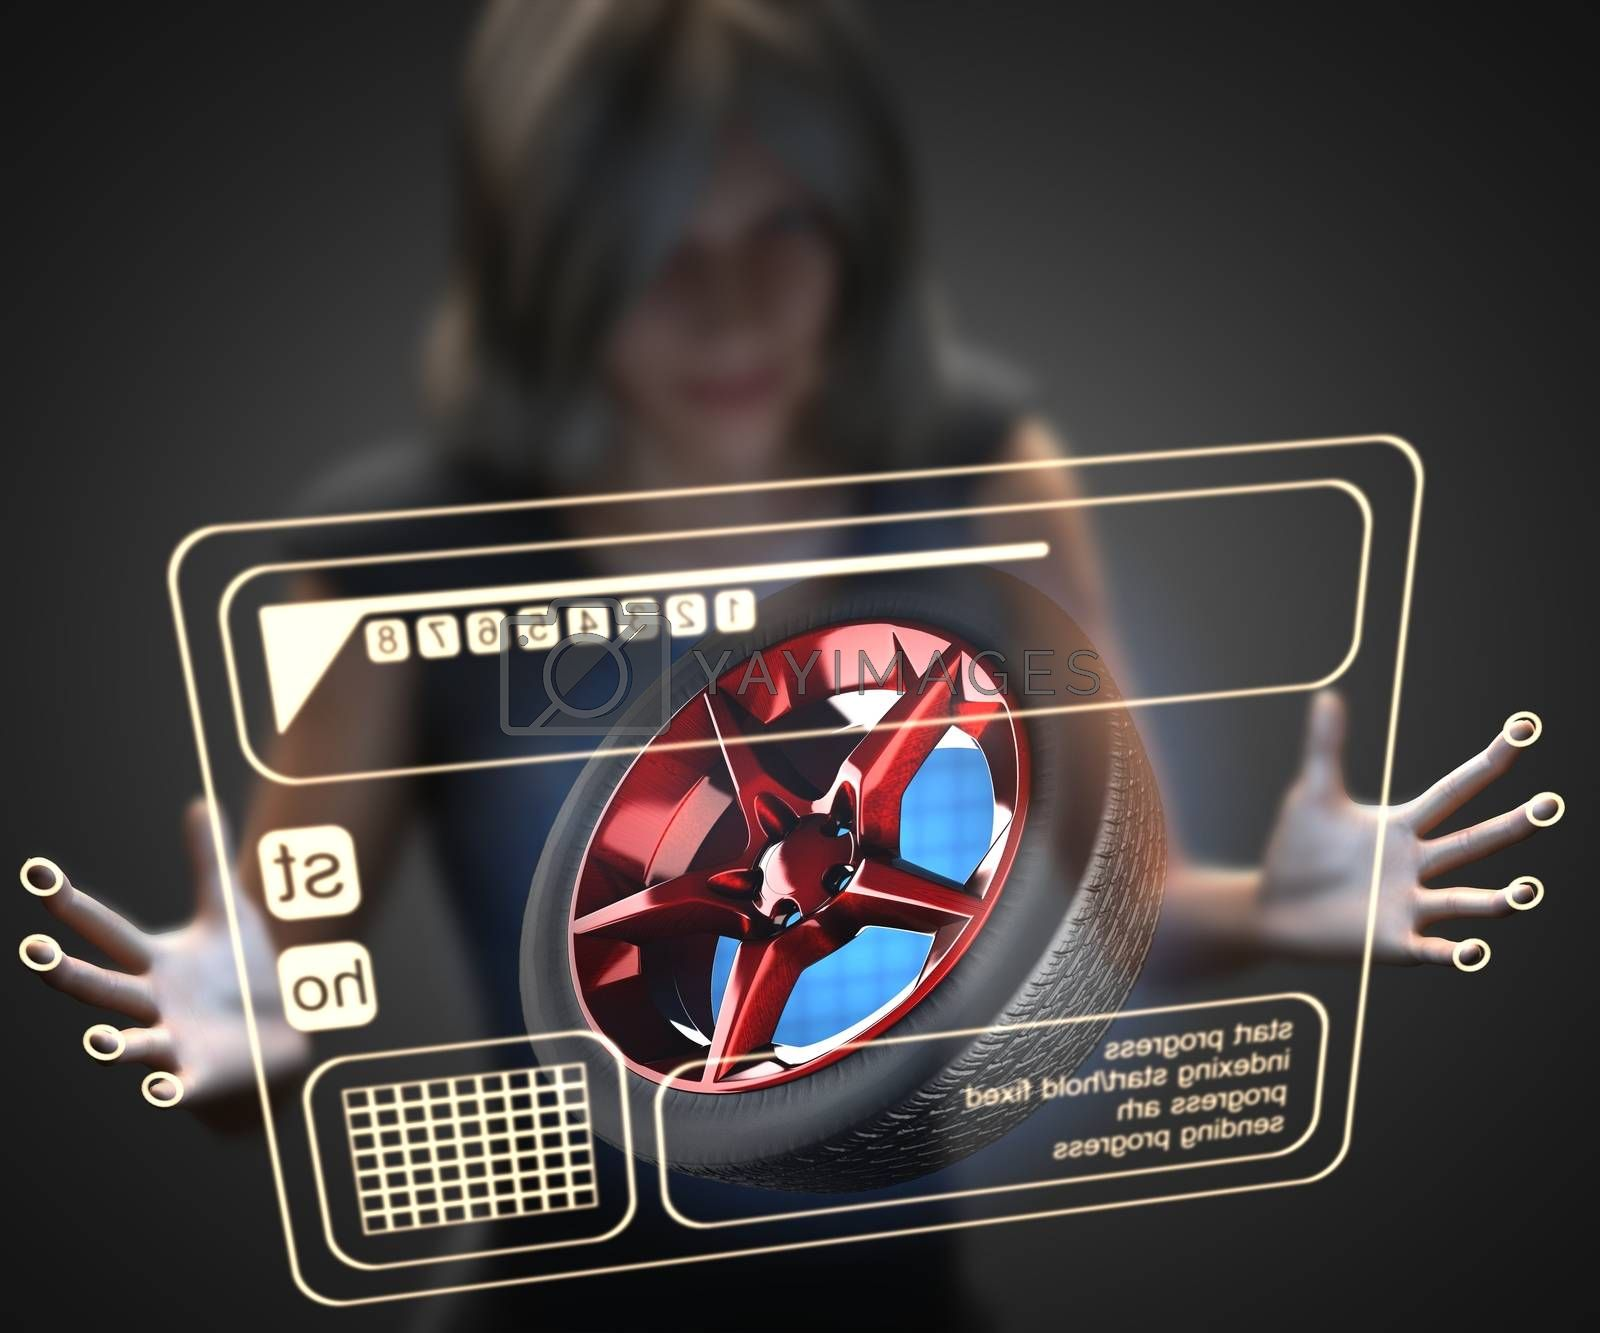 Royalty free image of woman and hologram with car wheel by videodoctor